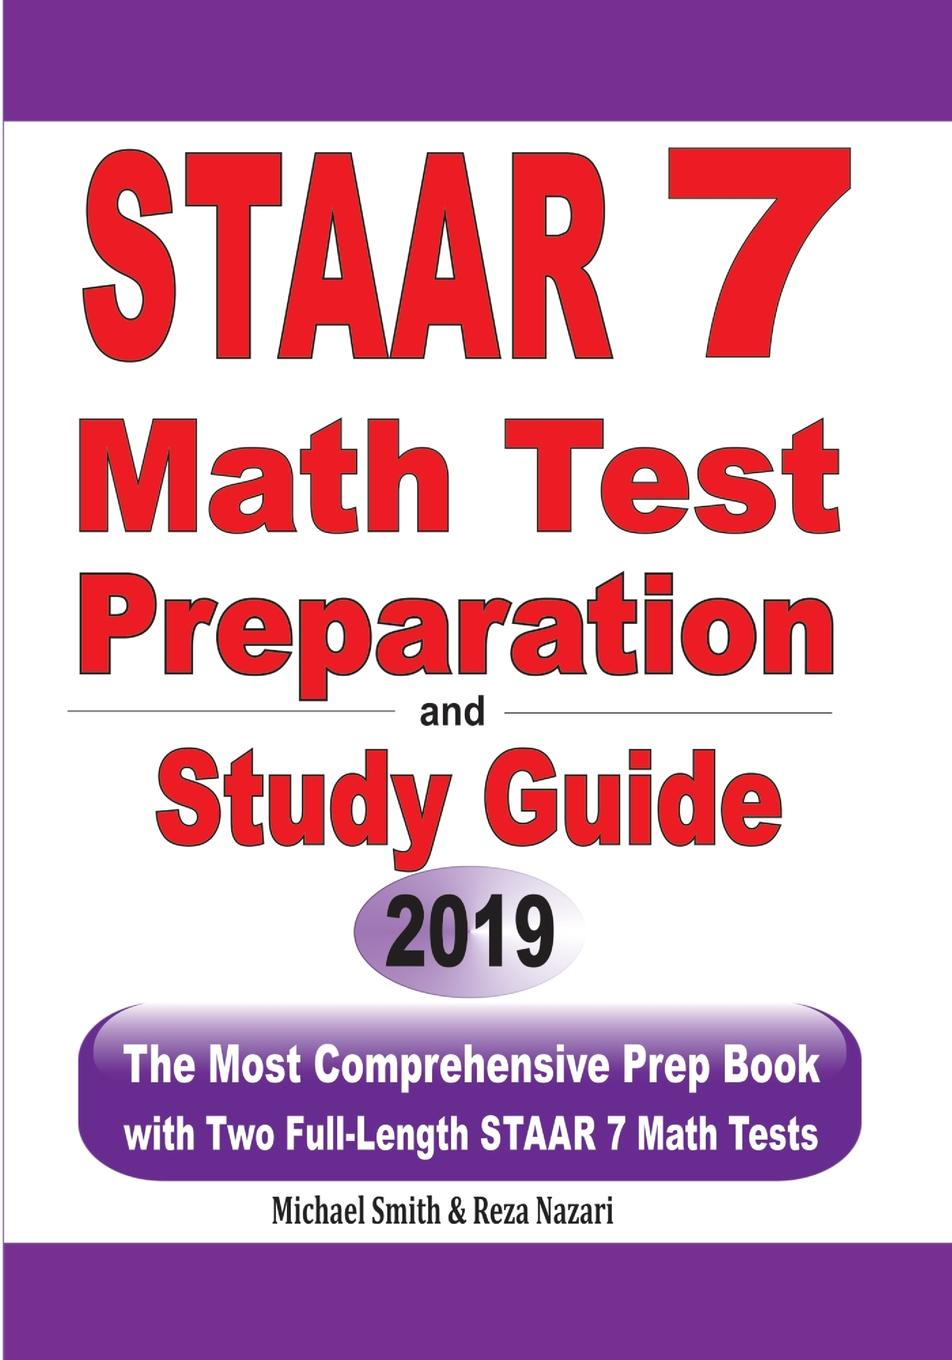 Michael Smith, Reza Nazari STAAR 7 Math Test Preparation and Study Guide. The Most Comprehensive Prep Book with Two Full-Length STAAR Math Tests